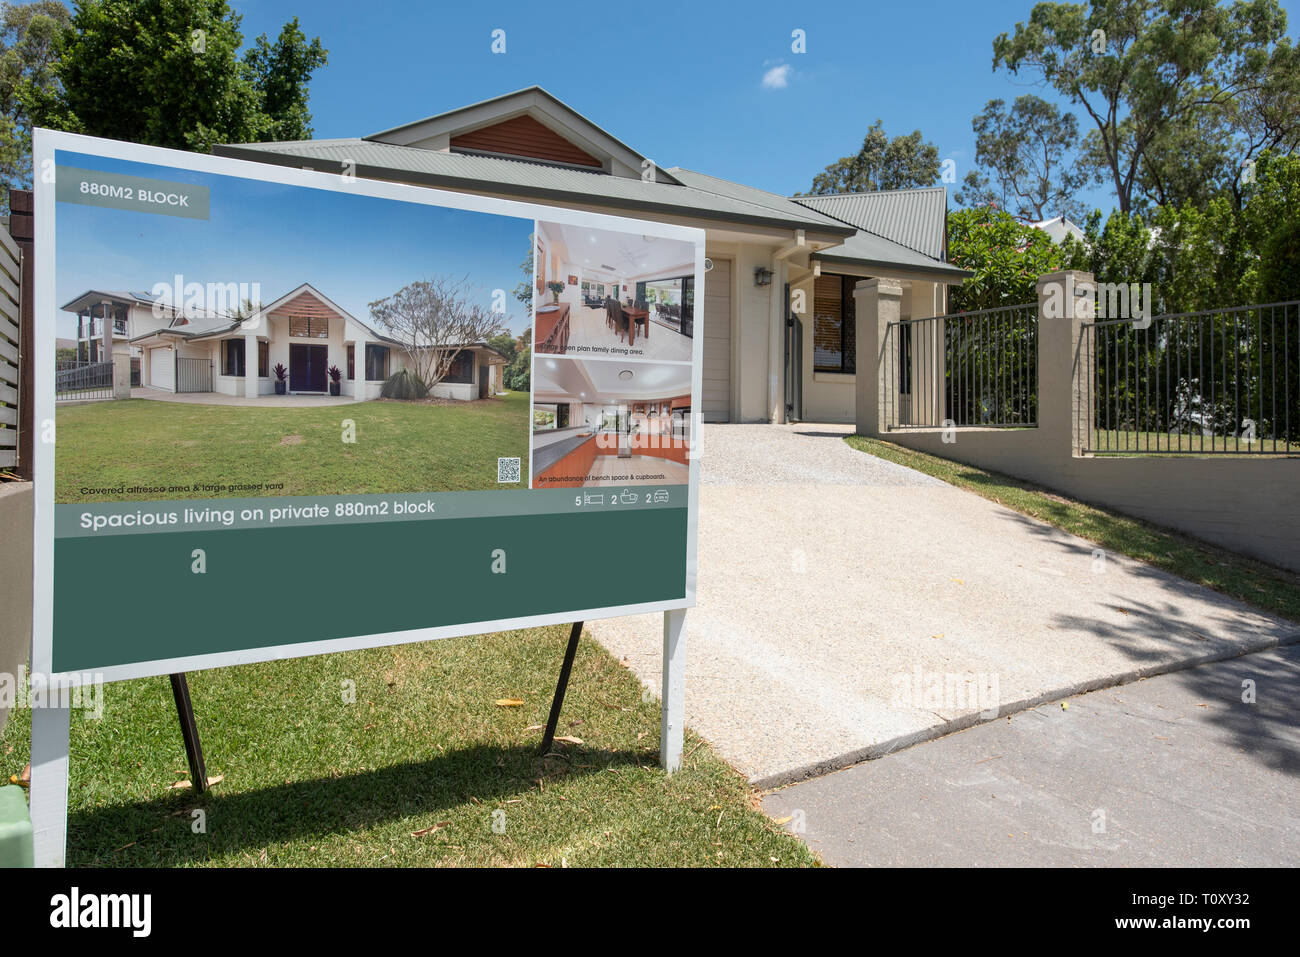 Residential real estate - house for sale, Queensland, Australia - Stock Image